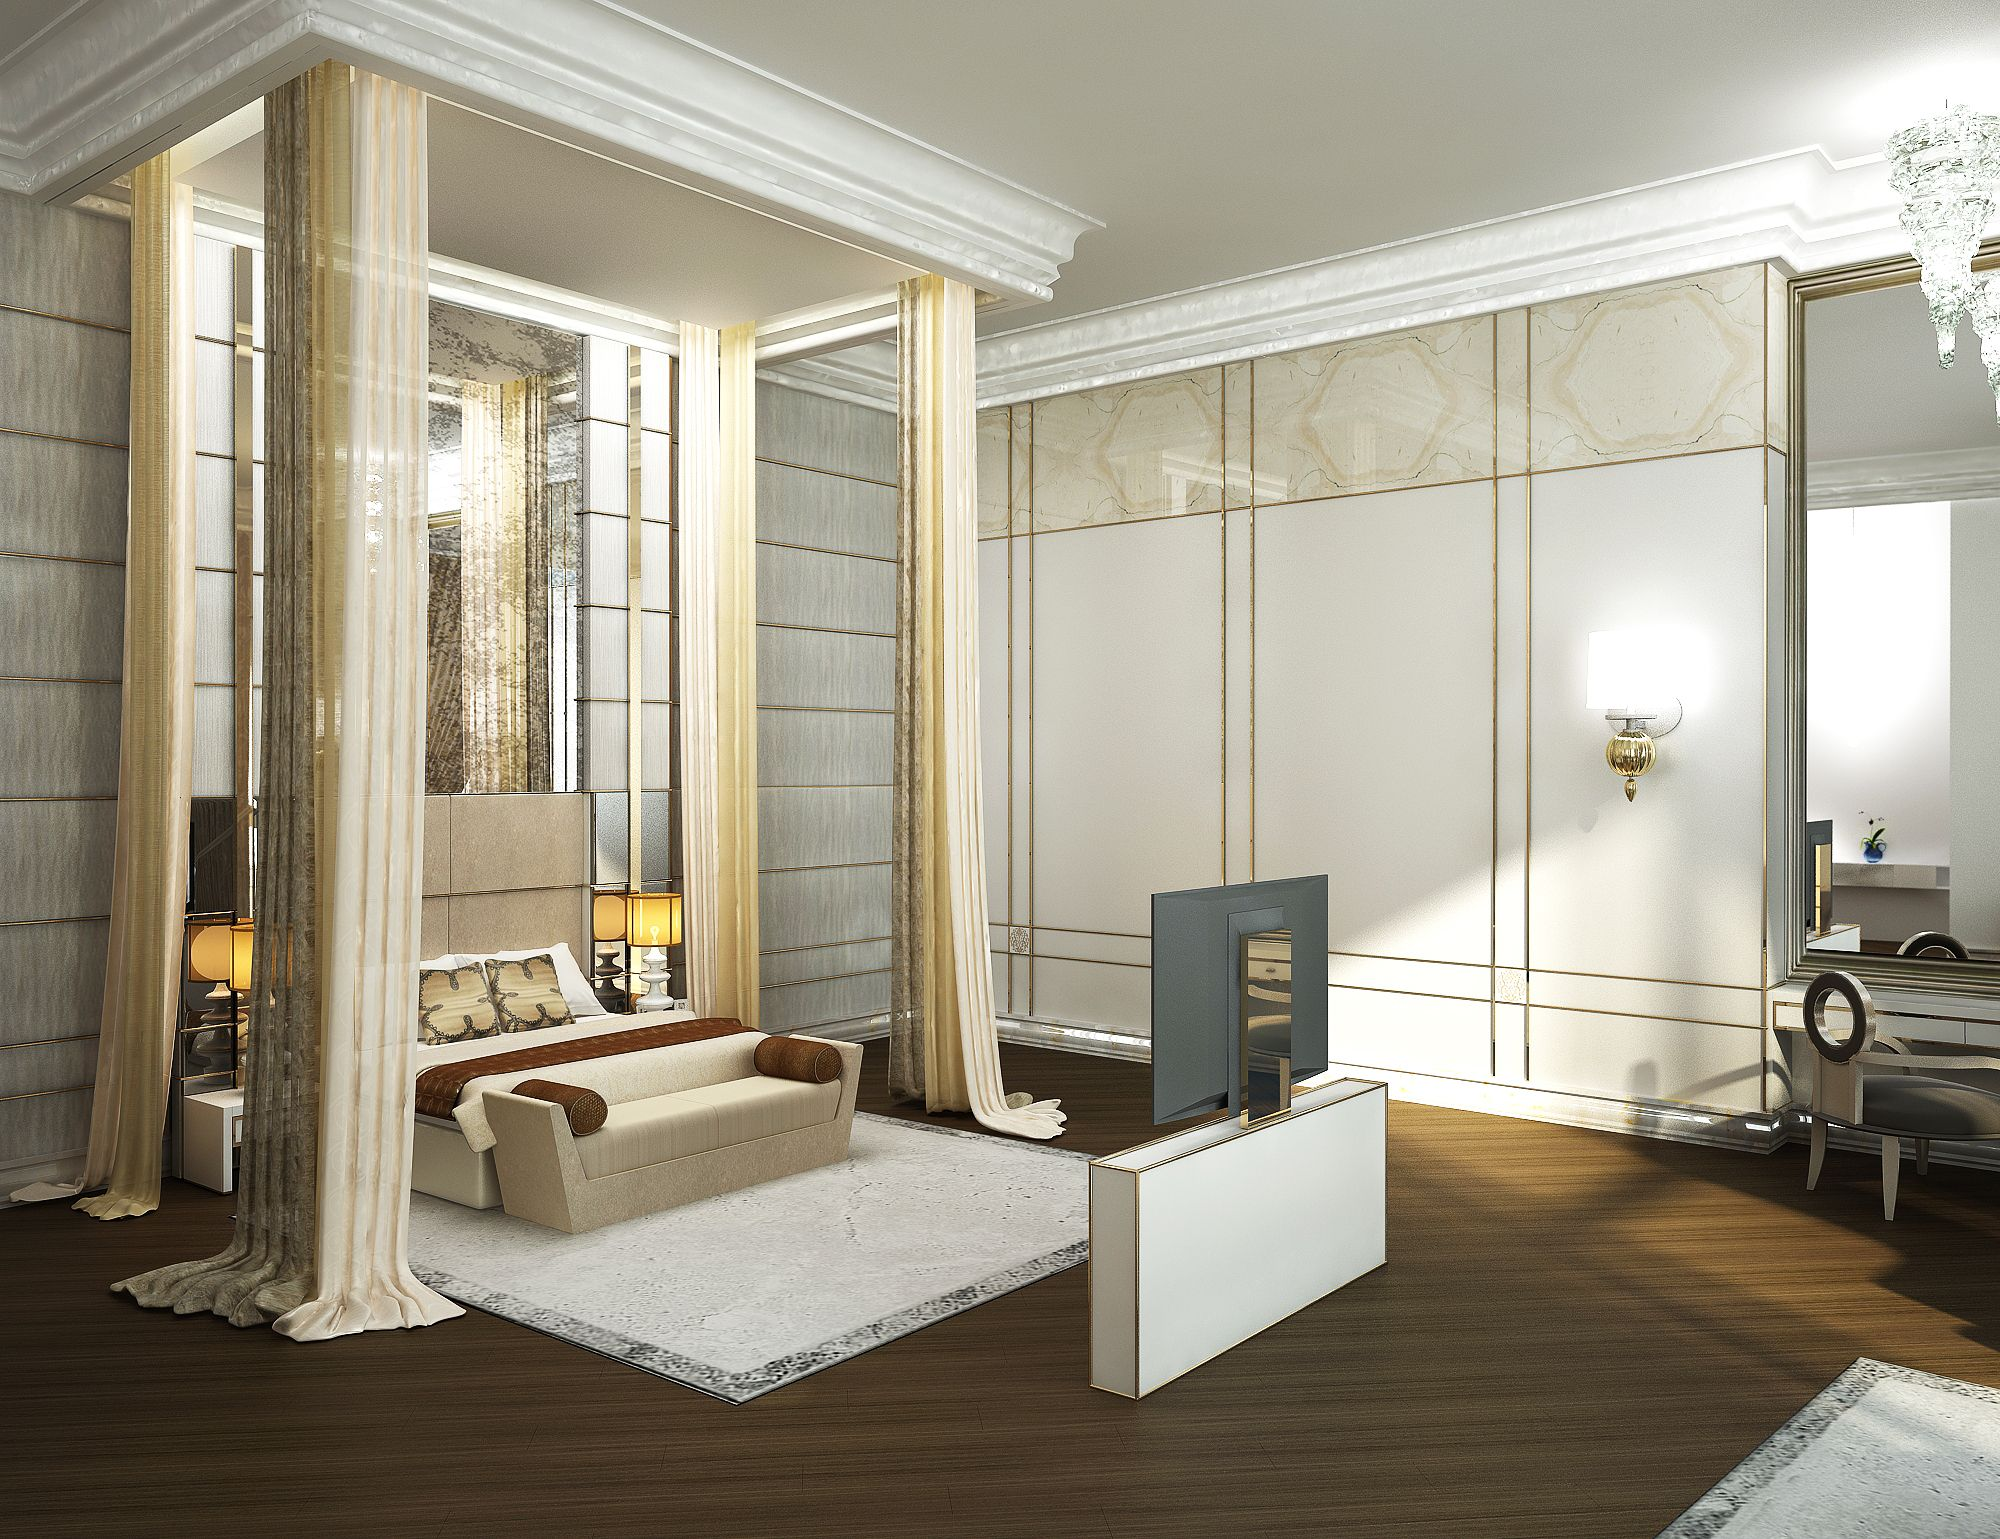 Renders 3d For Master Bedroom Project: Master Suite, Master Bedroom, Royal Suite Bedroom, Luxury